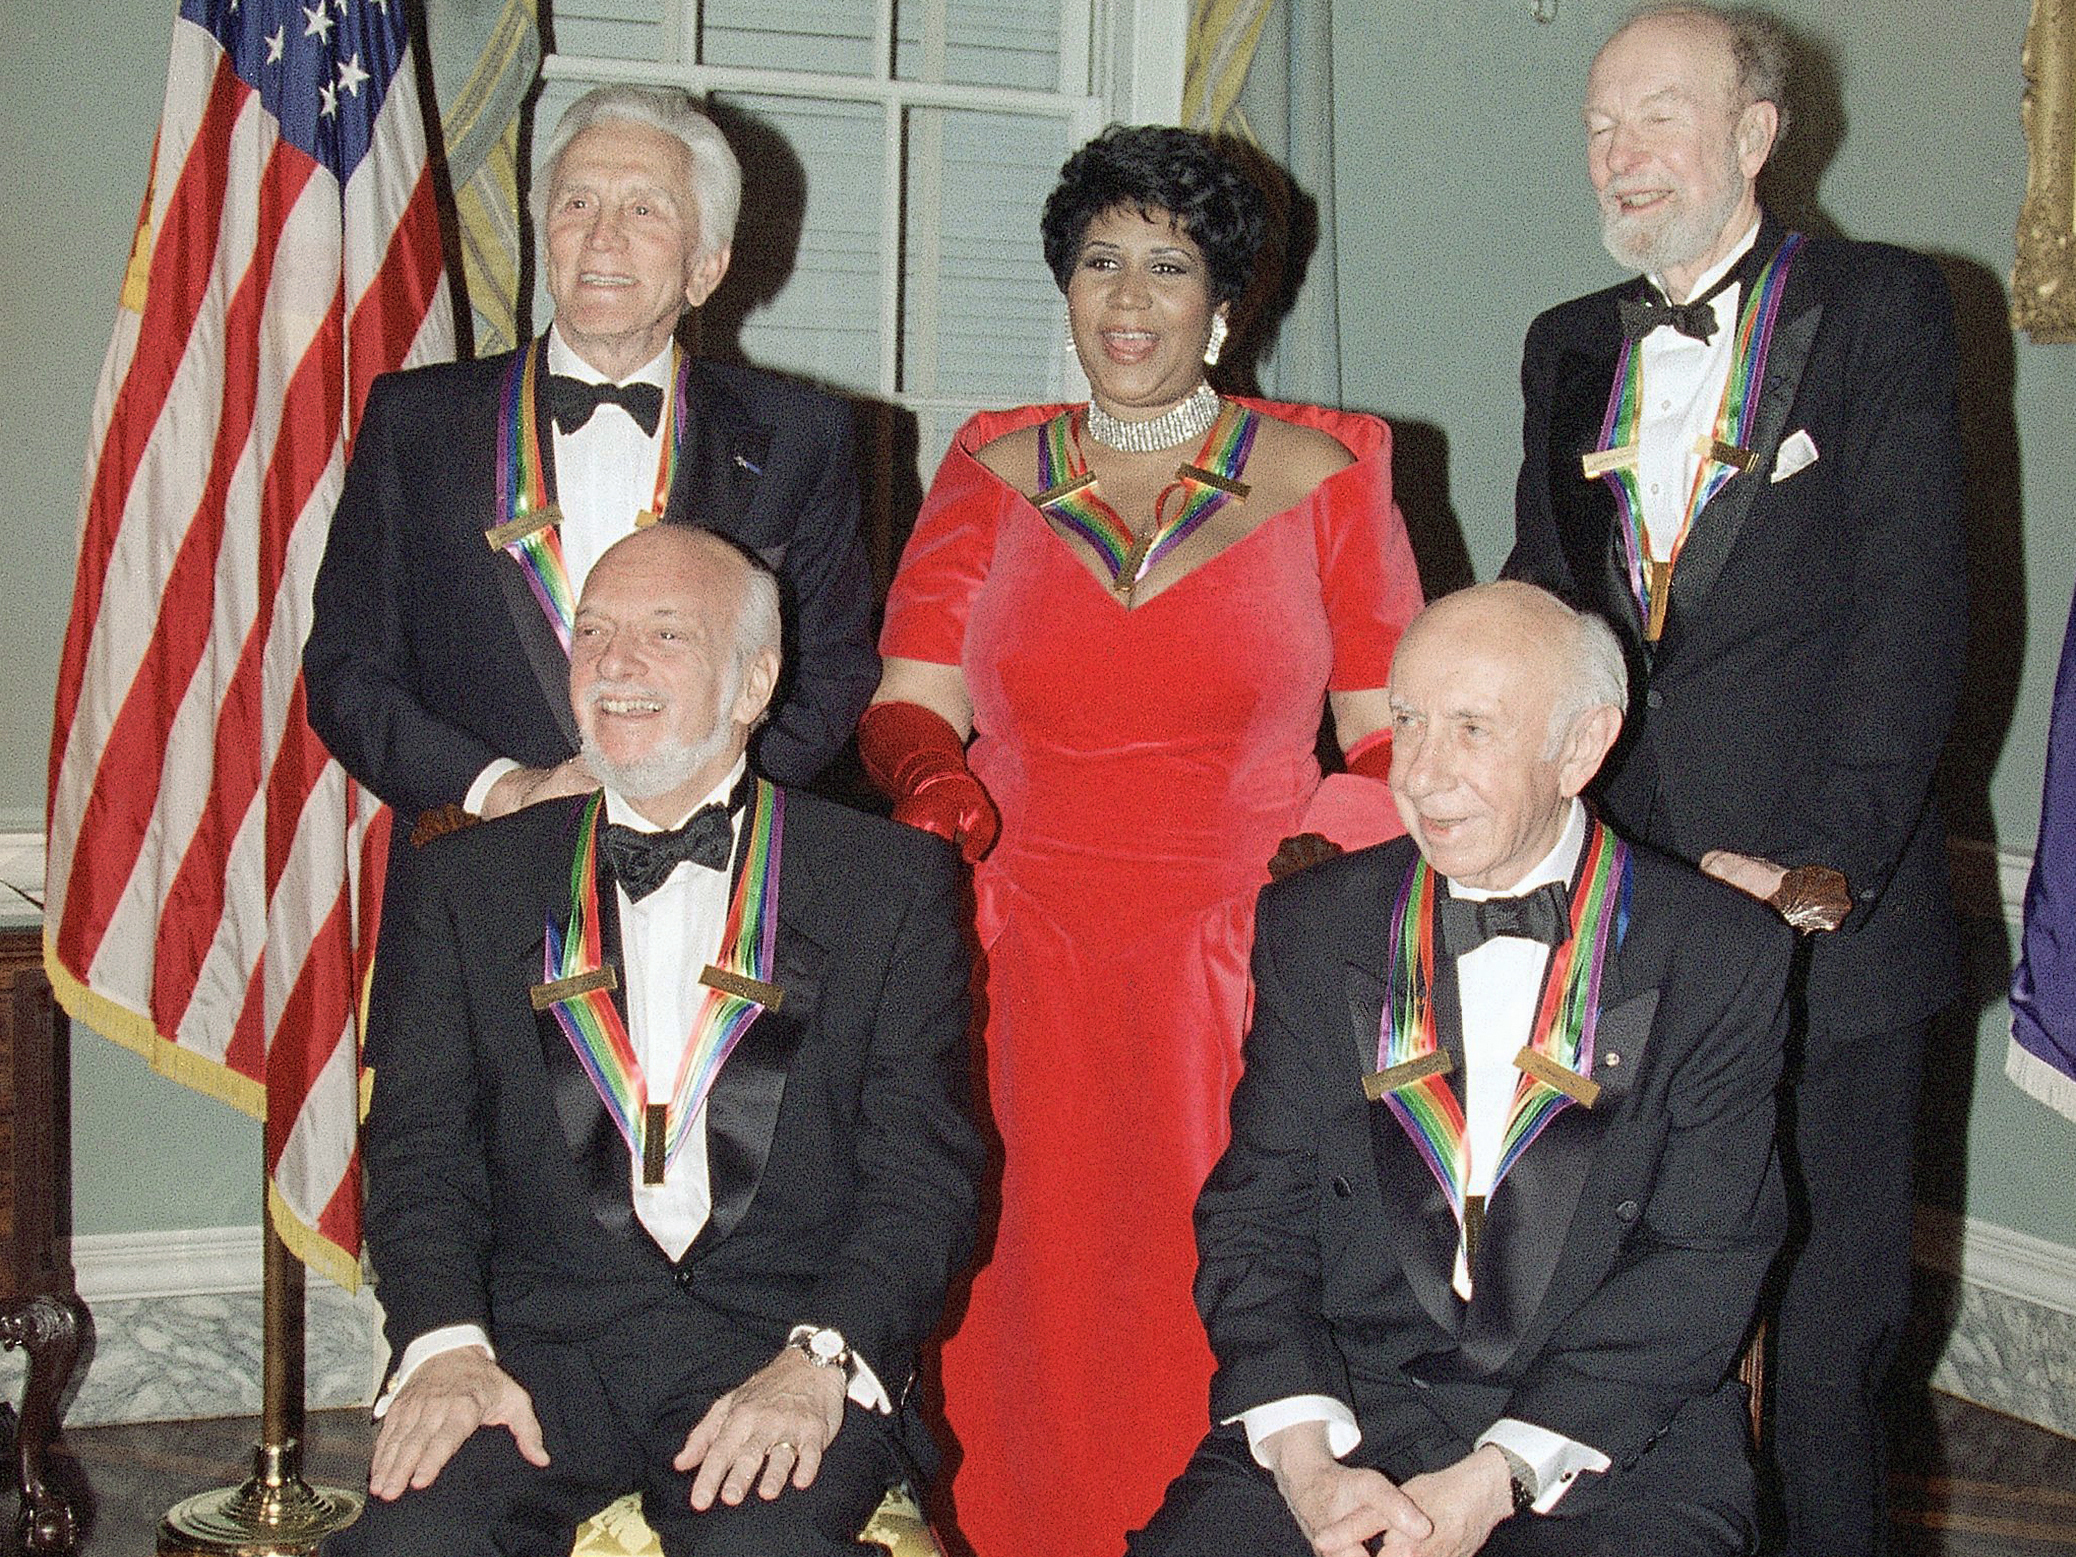 The 1994 recipients of the Kennedy Center Honors pose for a photograph. Hal Prince is seated on the left, next to Morton Gould. Standing, from left to right, are Kirk Douglas, Aretha Franklin and Pete Seeger.